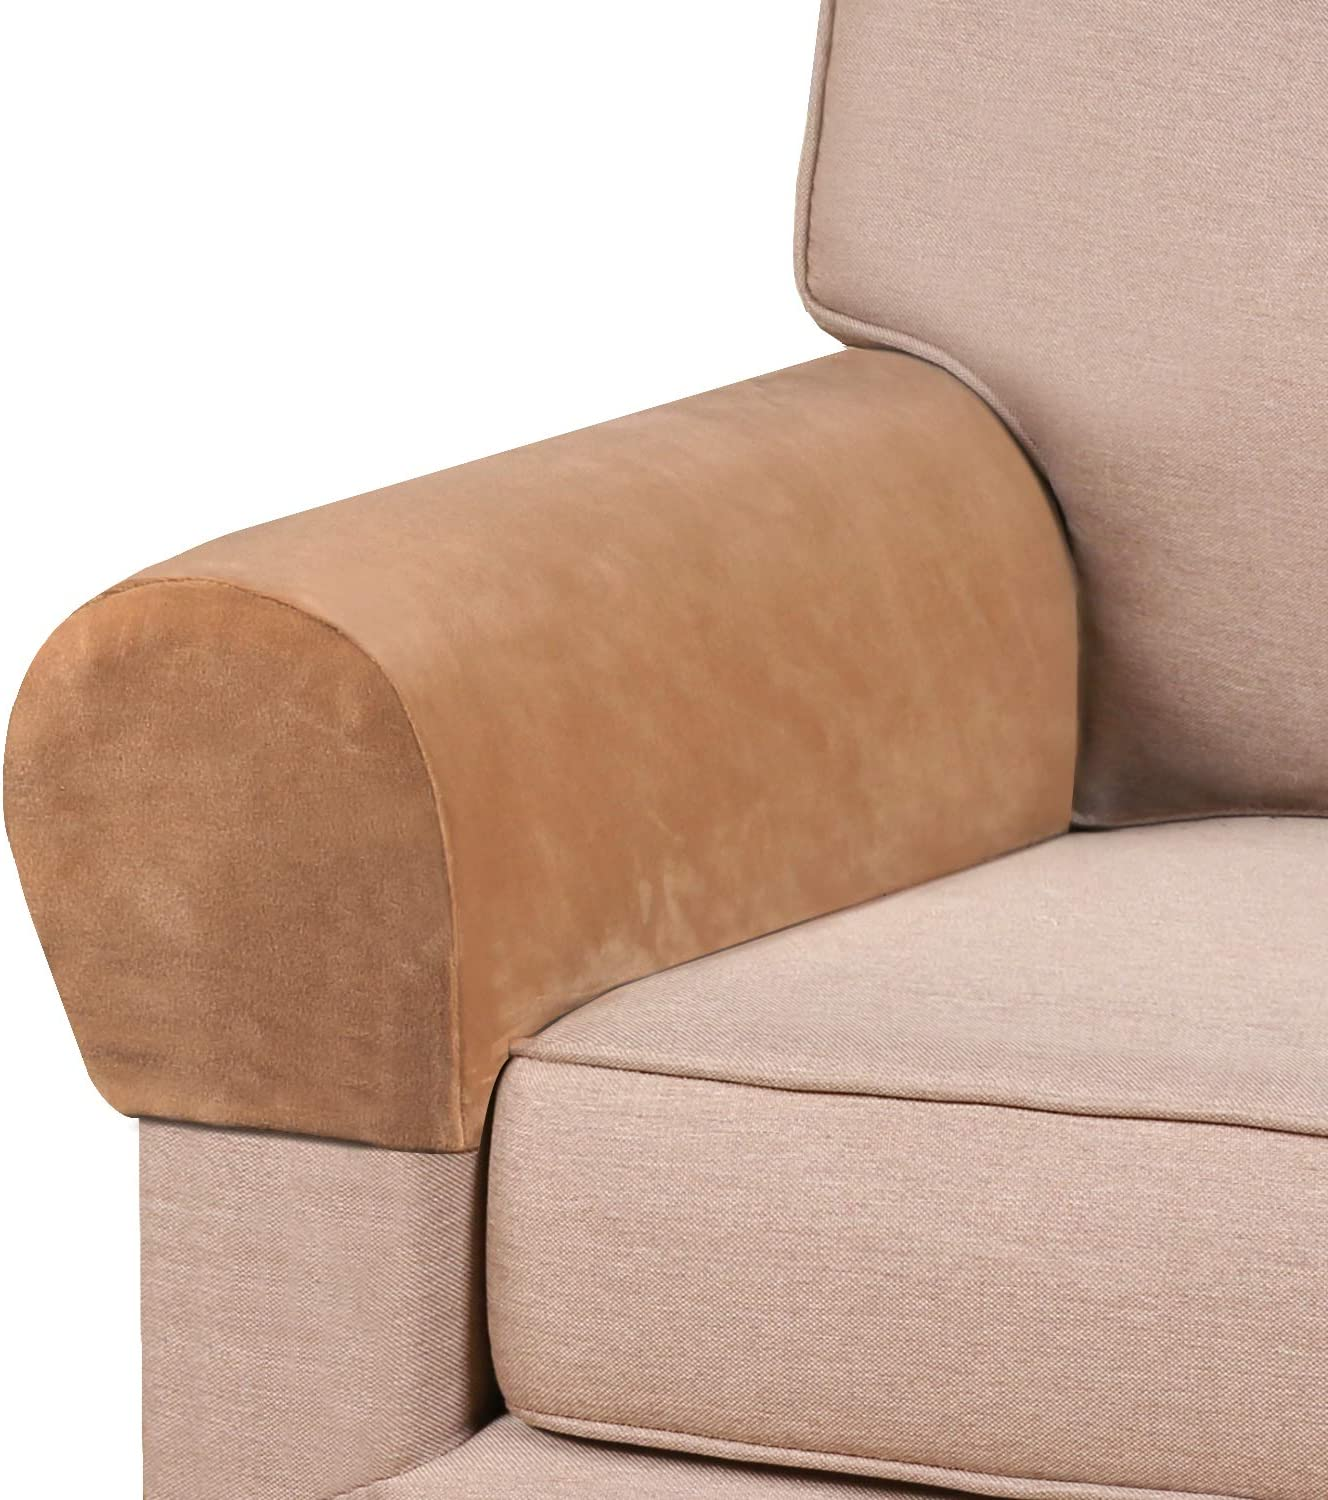 PrinceDeco Thick Velvet Stretch Armrest Covers for Chairs and Sofas Armchair Covers for Arms Couch Arm Covers Armrest Covers for Sofa Non Slip (4 Pack: Camel)